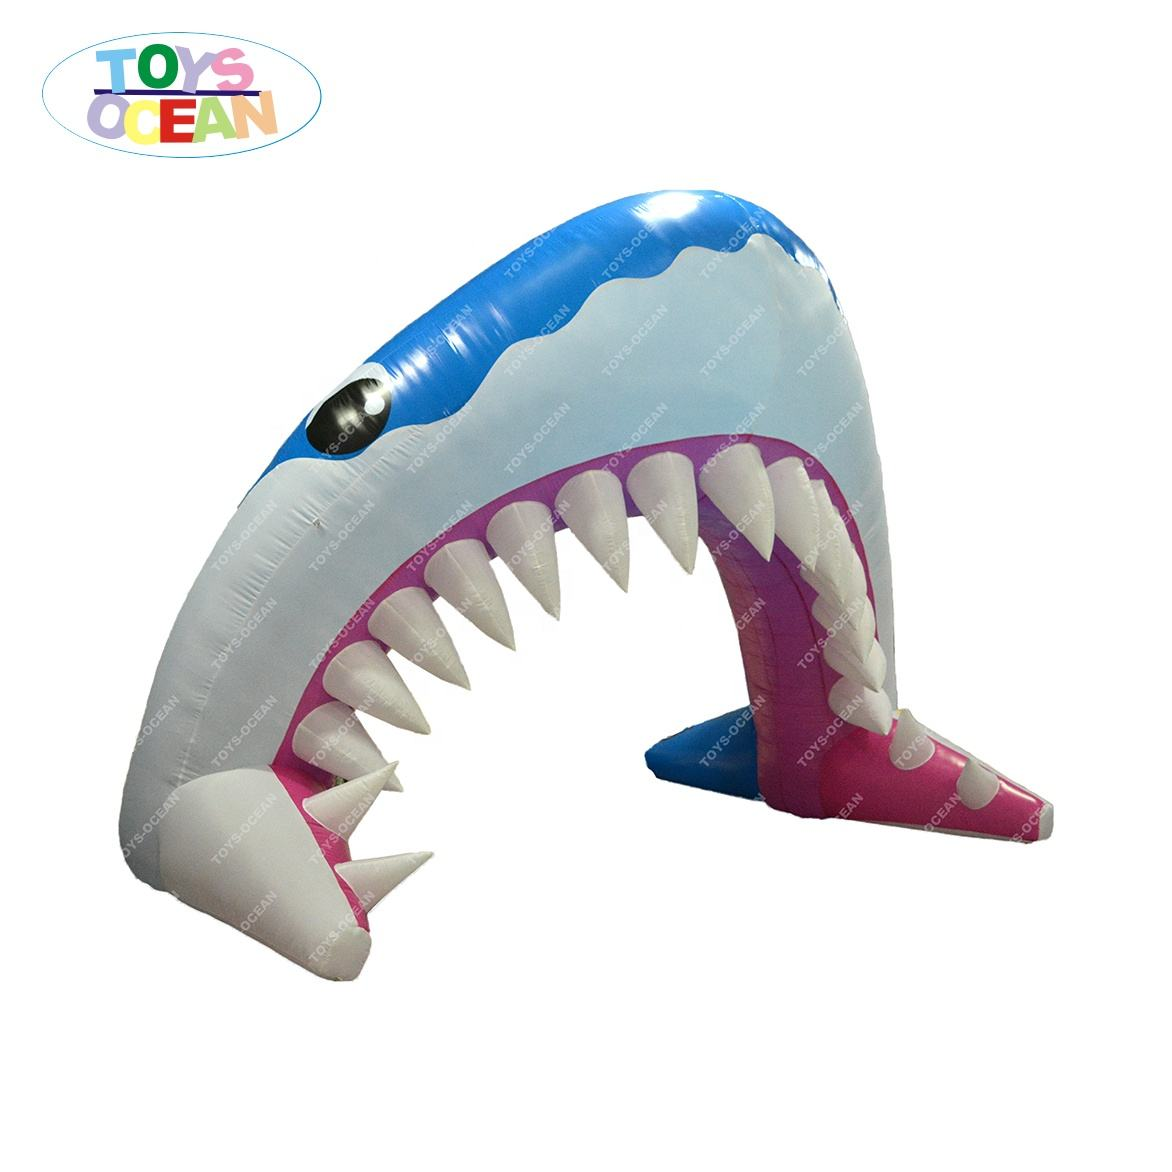 De alta calidad de arco Animal Plaza inflable gran pez arco